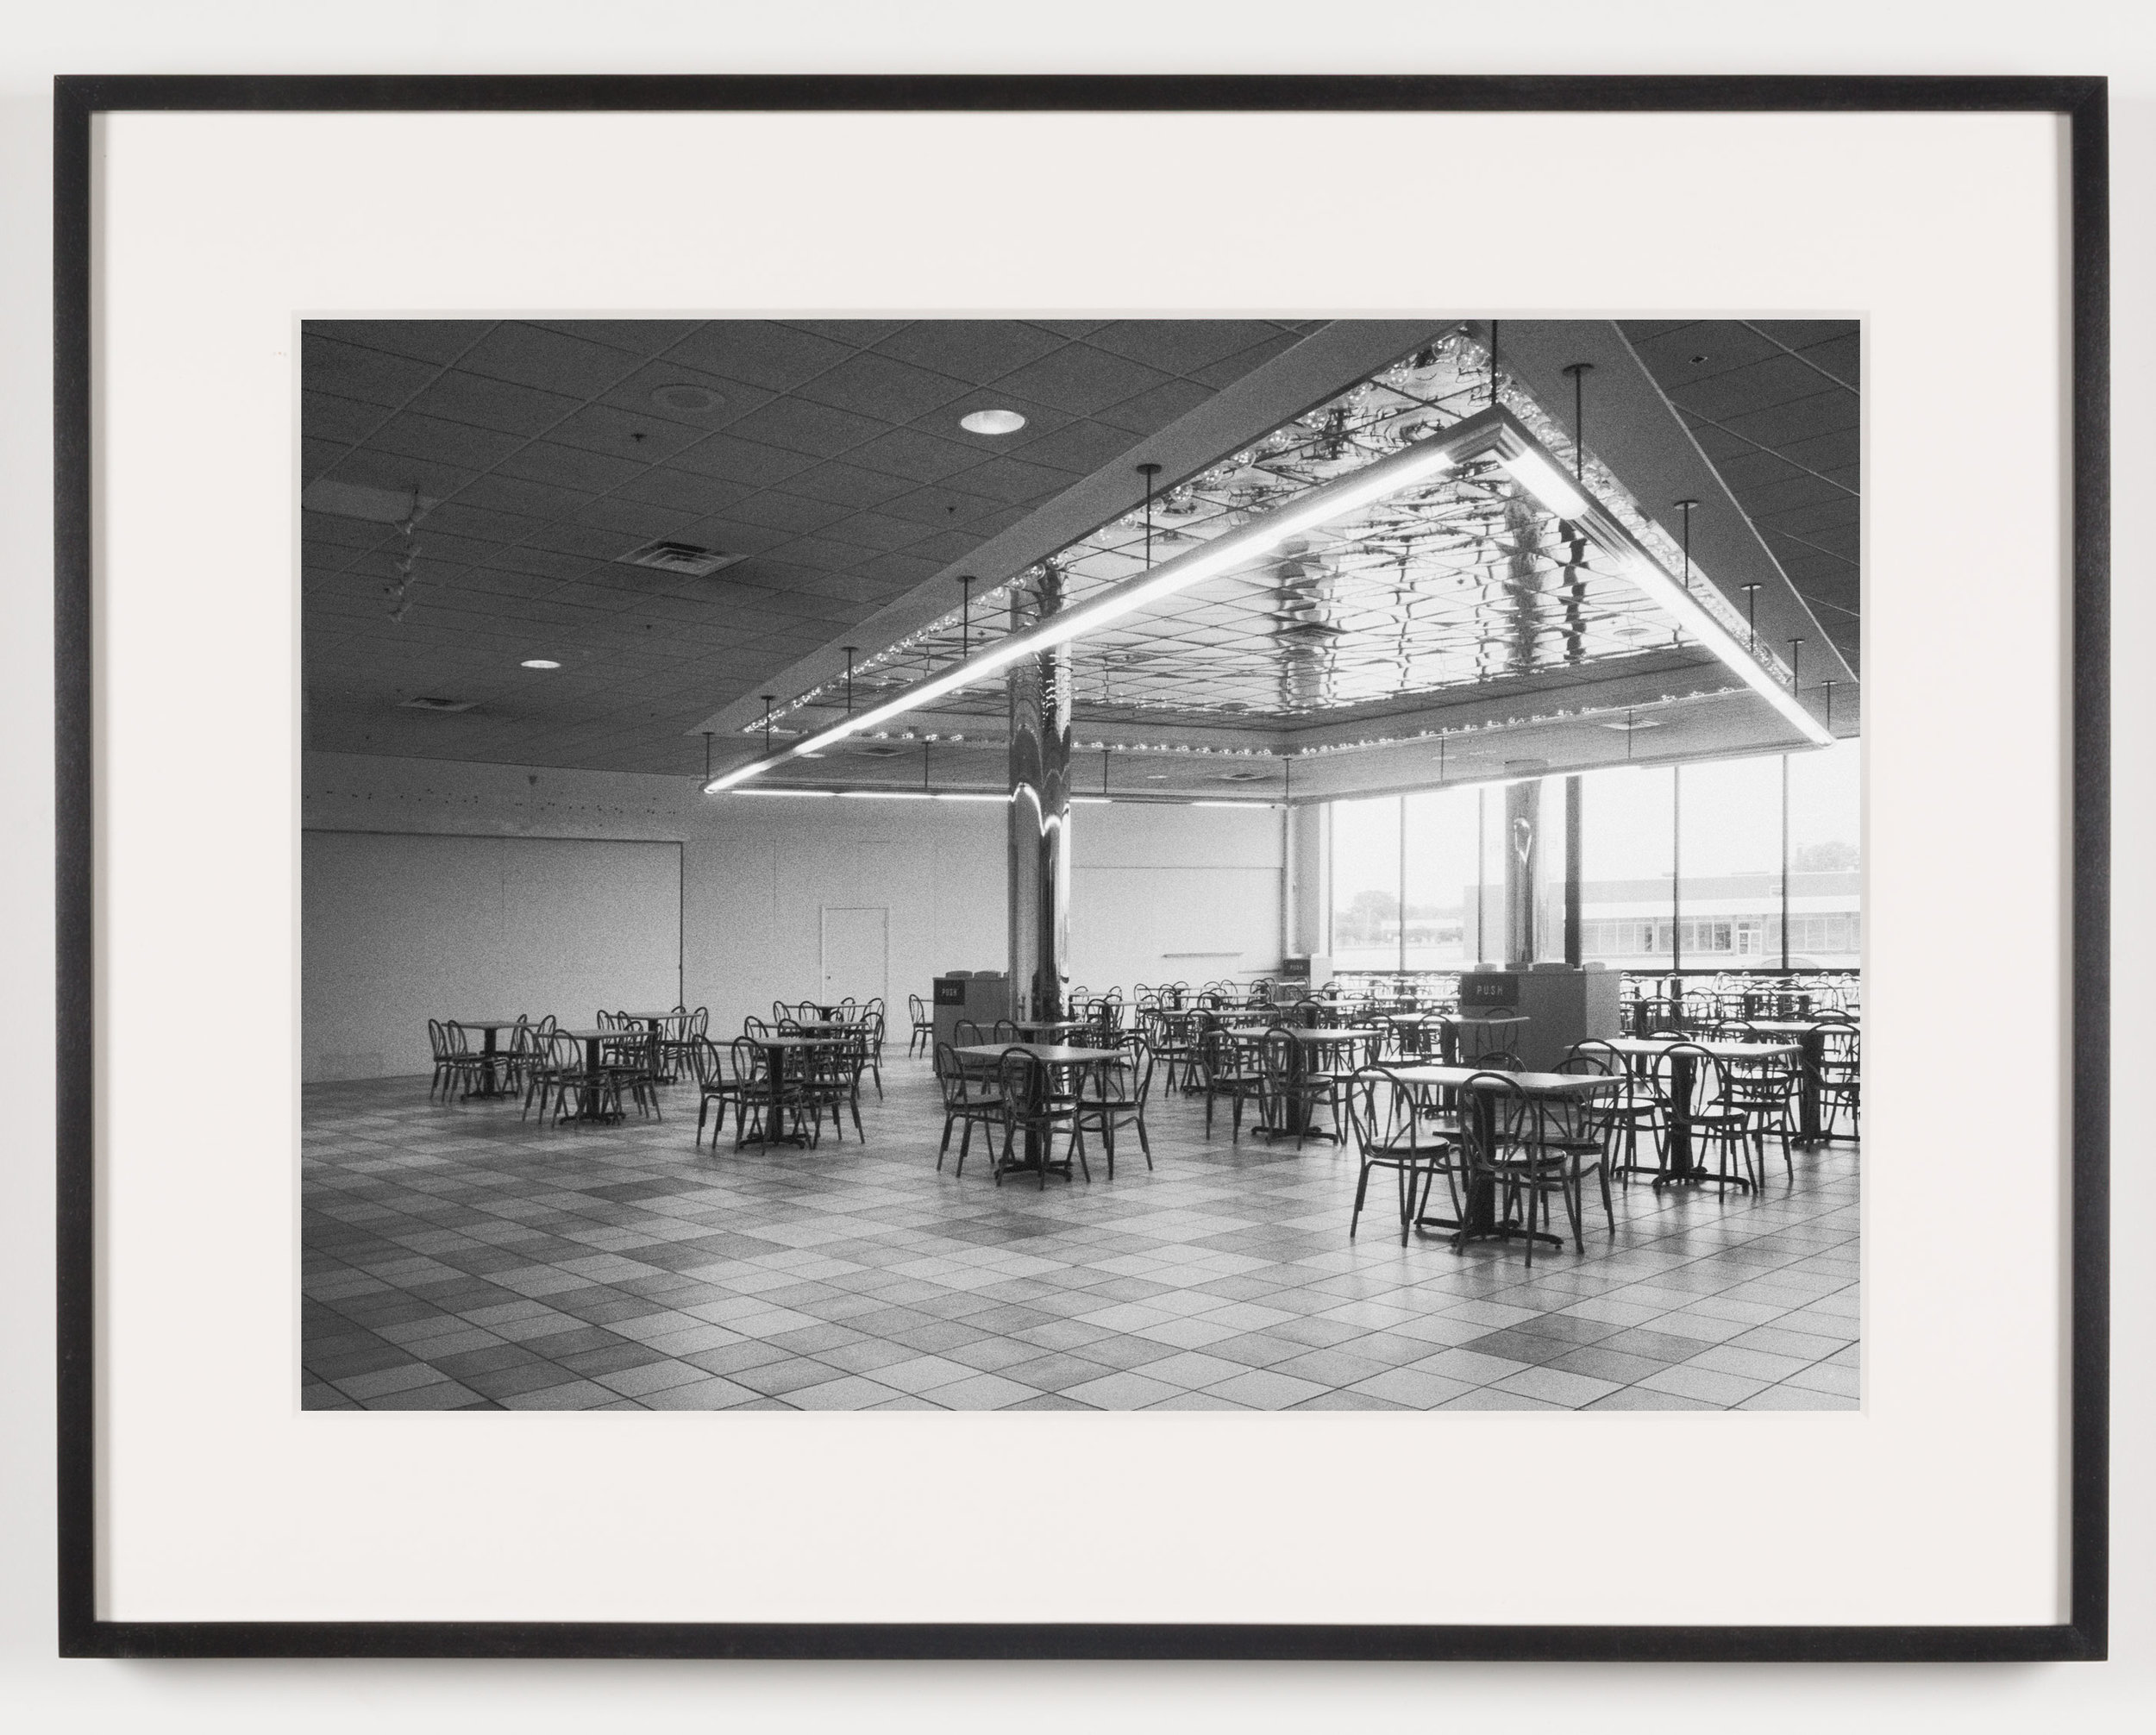 Southwyck Mall (View of Food Court), Toledo, OH, Est. 1972, Demo. 2009   2011  Epson Ultrachrome K3 archival ink jet print on Hahnemühle Photo Rag paper  21 5/8 x 28 1/8 inches   American Passages, 2001–2011    A Diagram of Forces, 2011